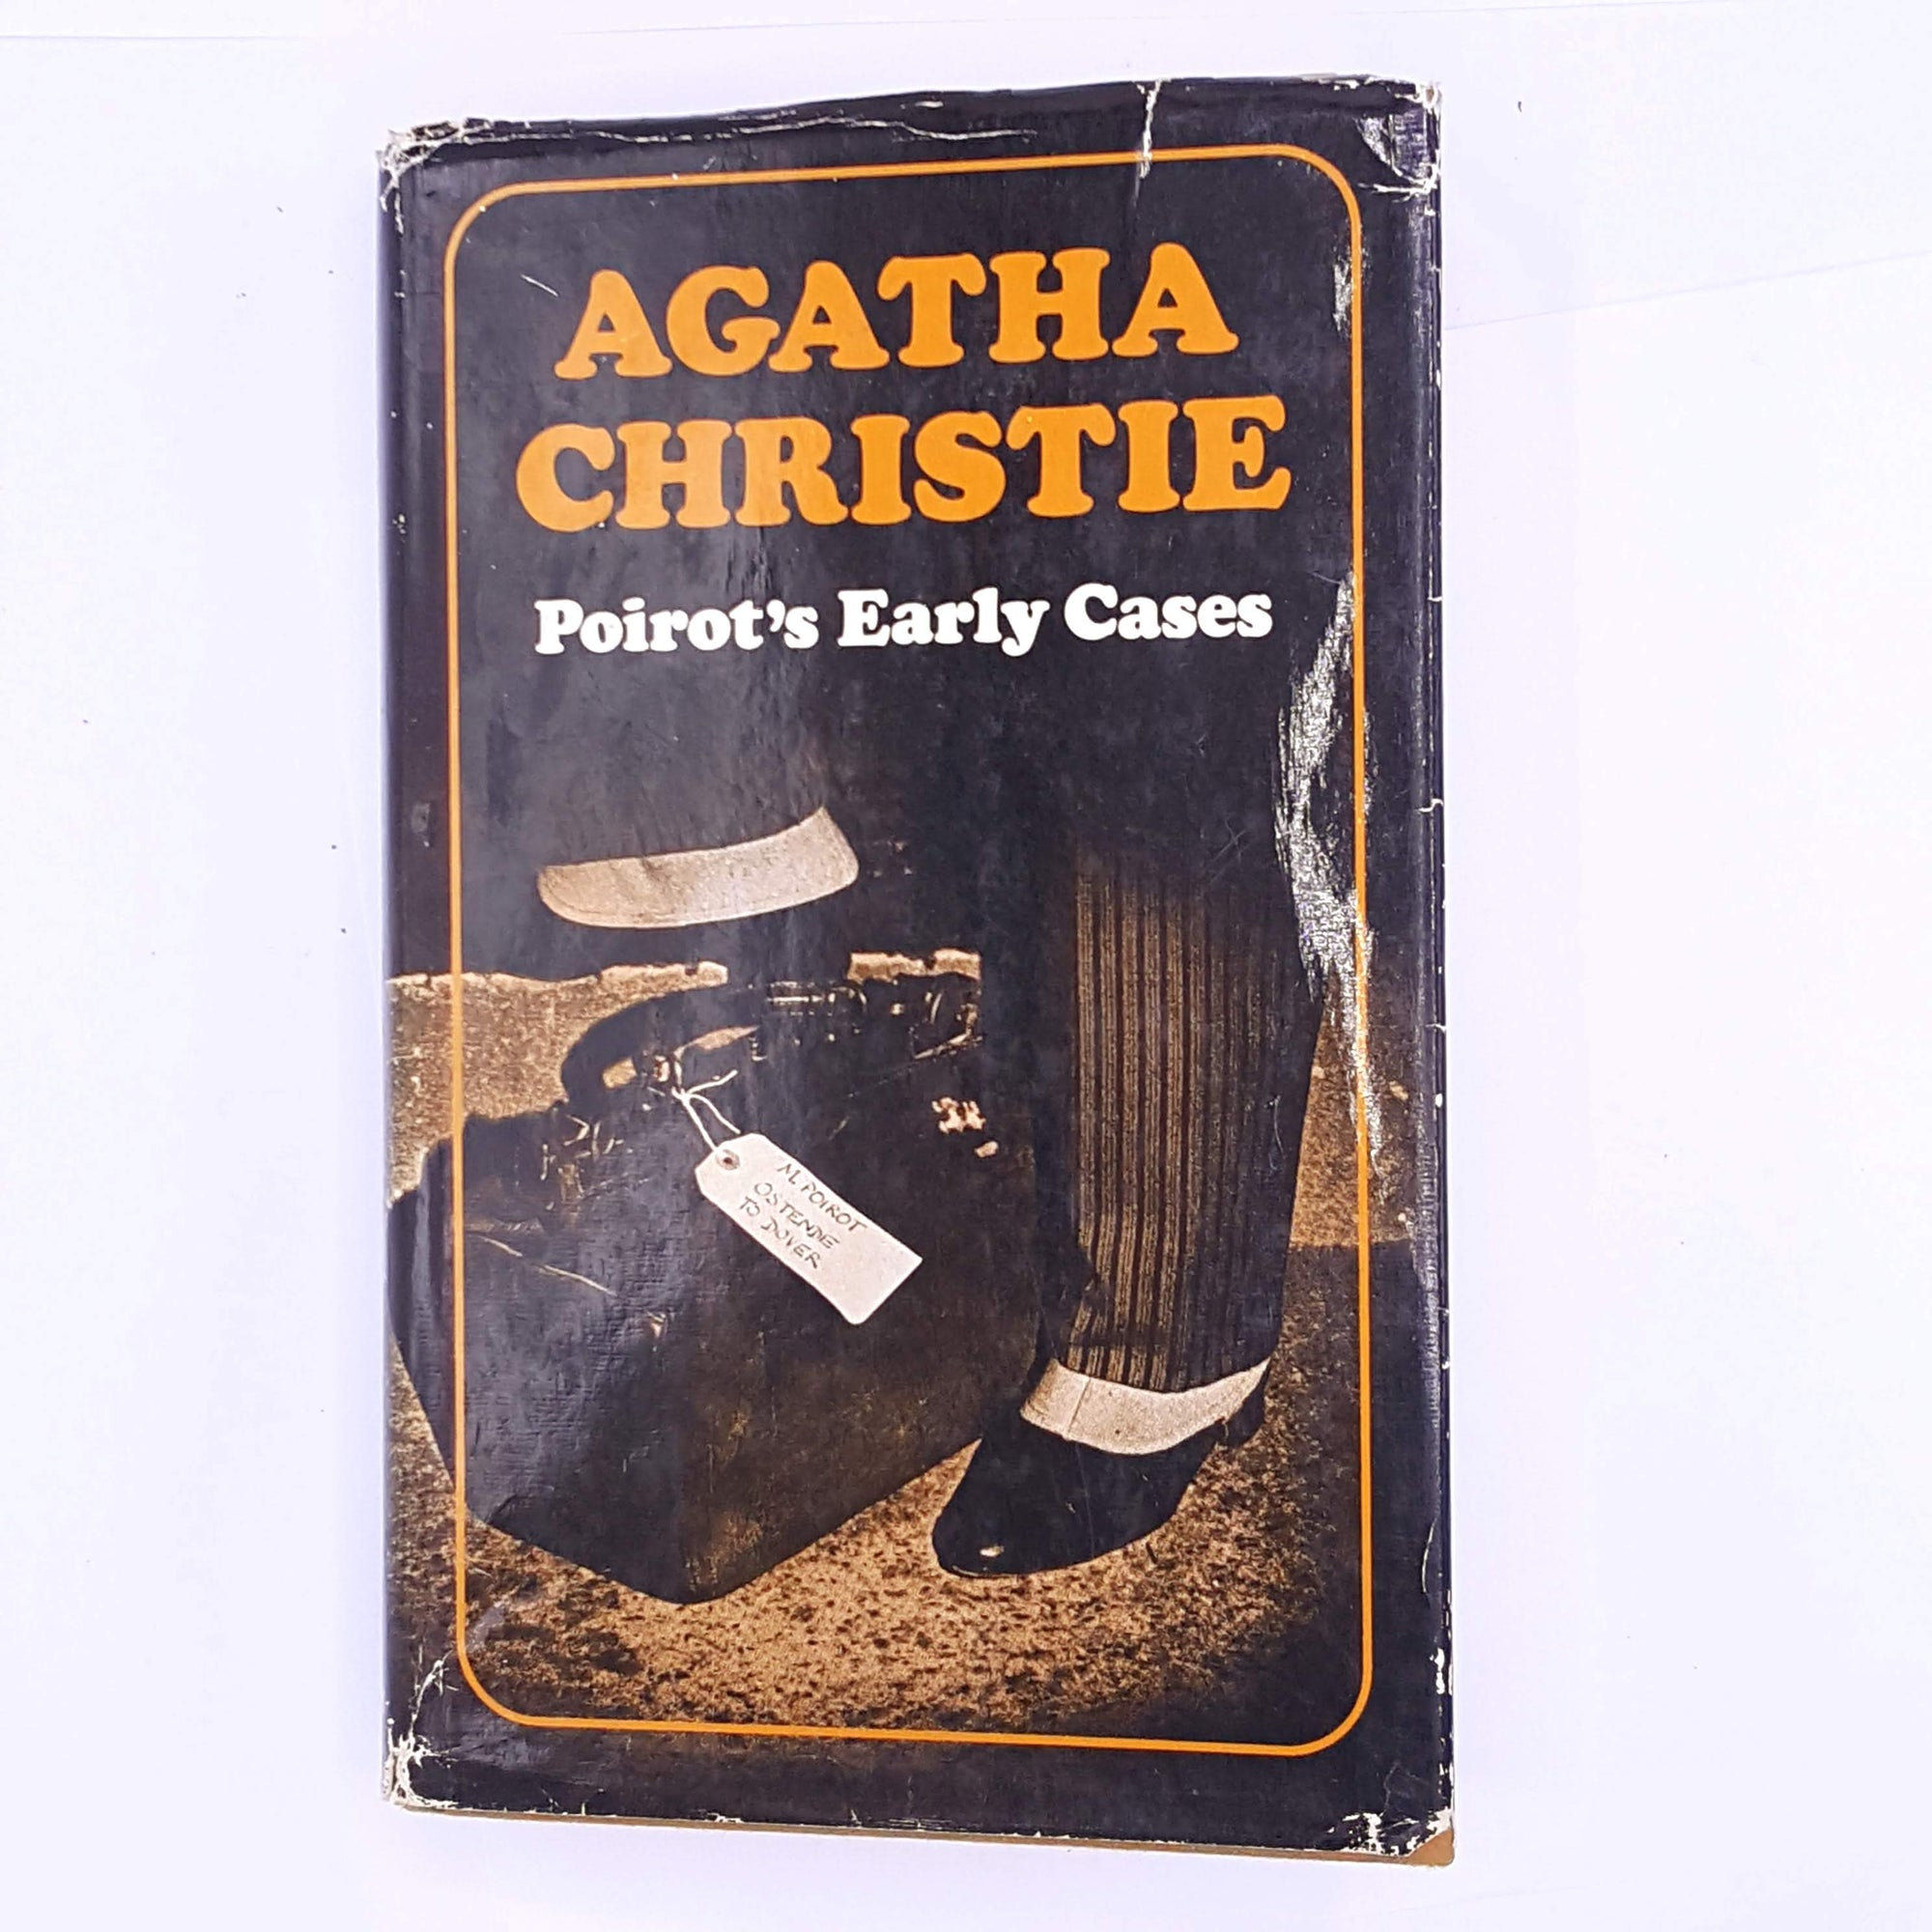 patterned-crime-and-fiction-story-thrift-classic-murder-mystery-crime-writer-classic-murder-poirots-early-cases-decorative-agatha-christie-thriller-mystery-books-poirot-miss-marple-female-author-antique-country-house-library-old-vintage-